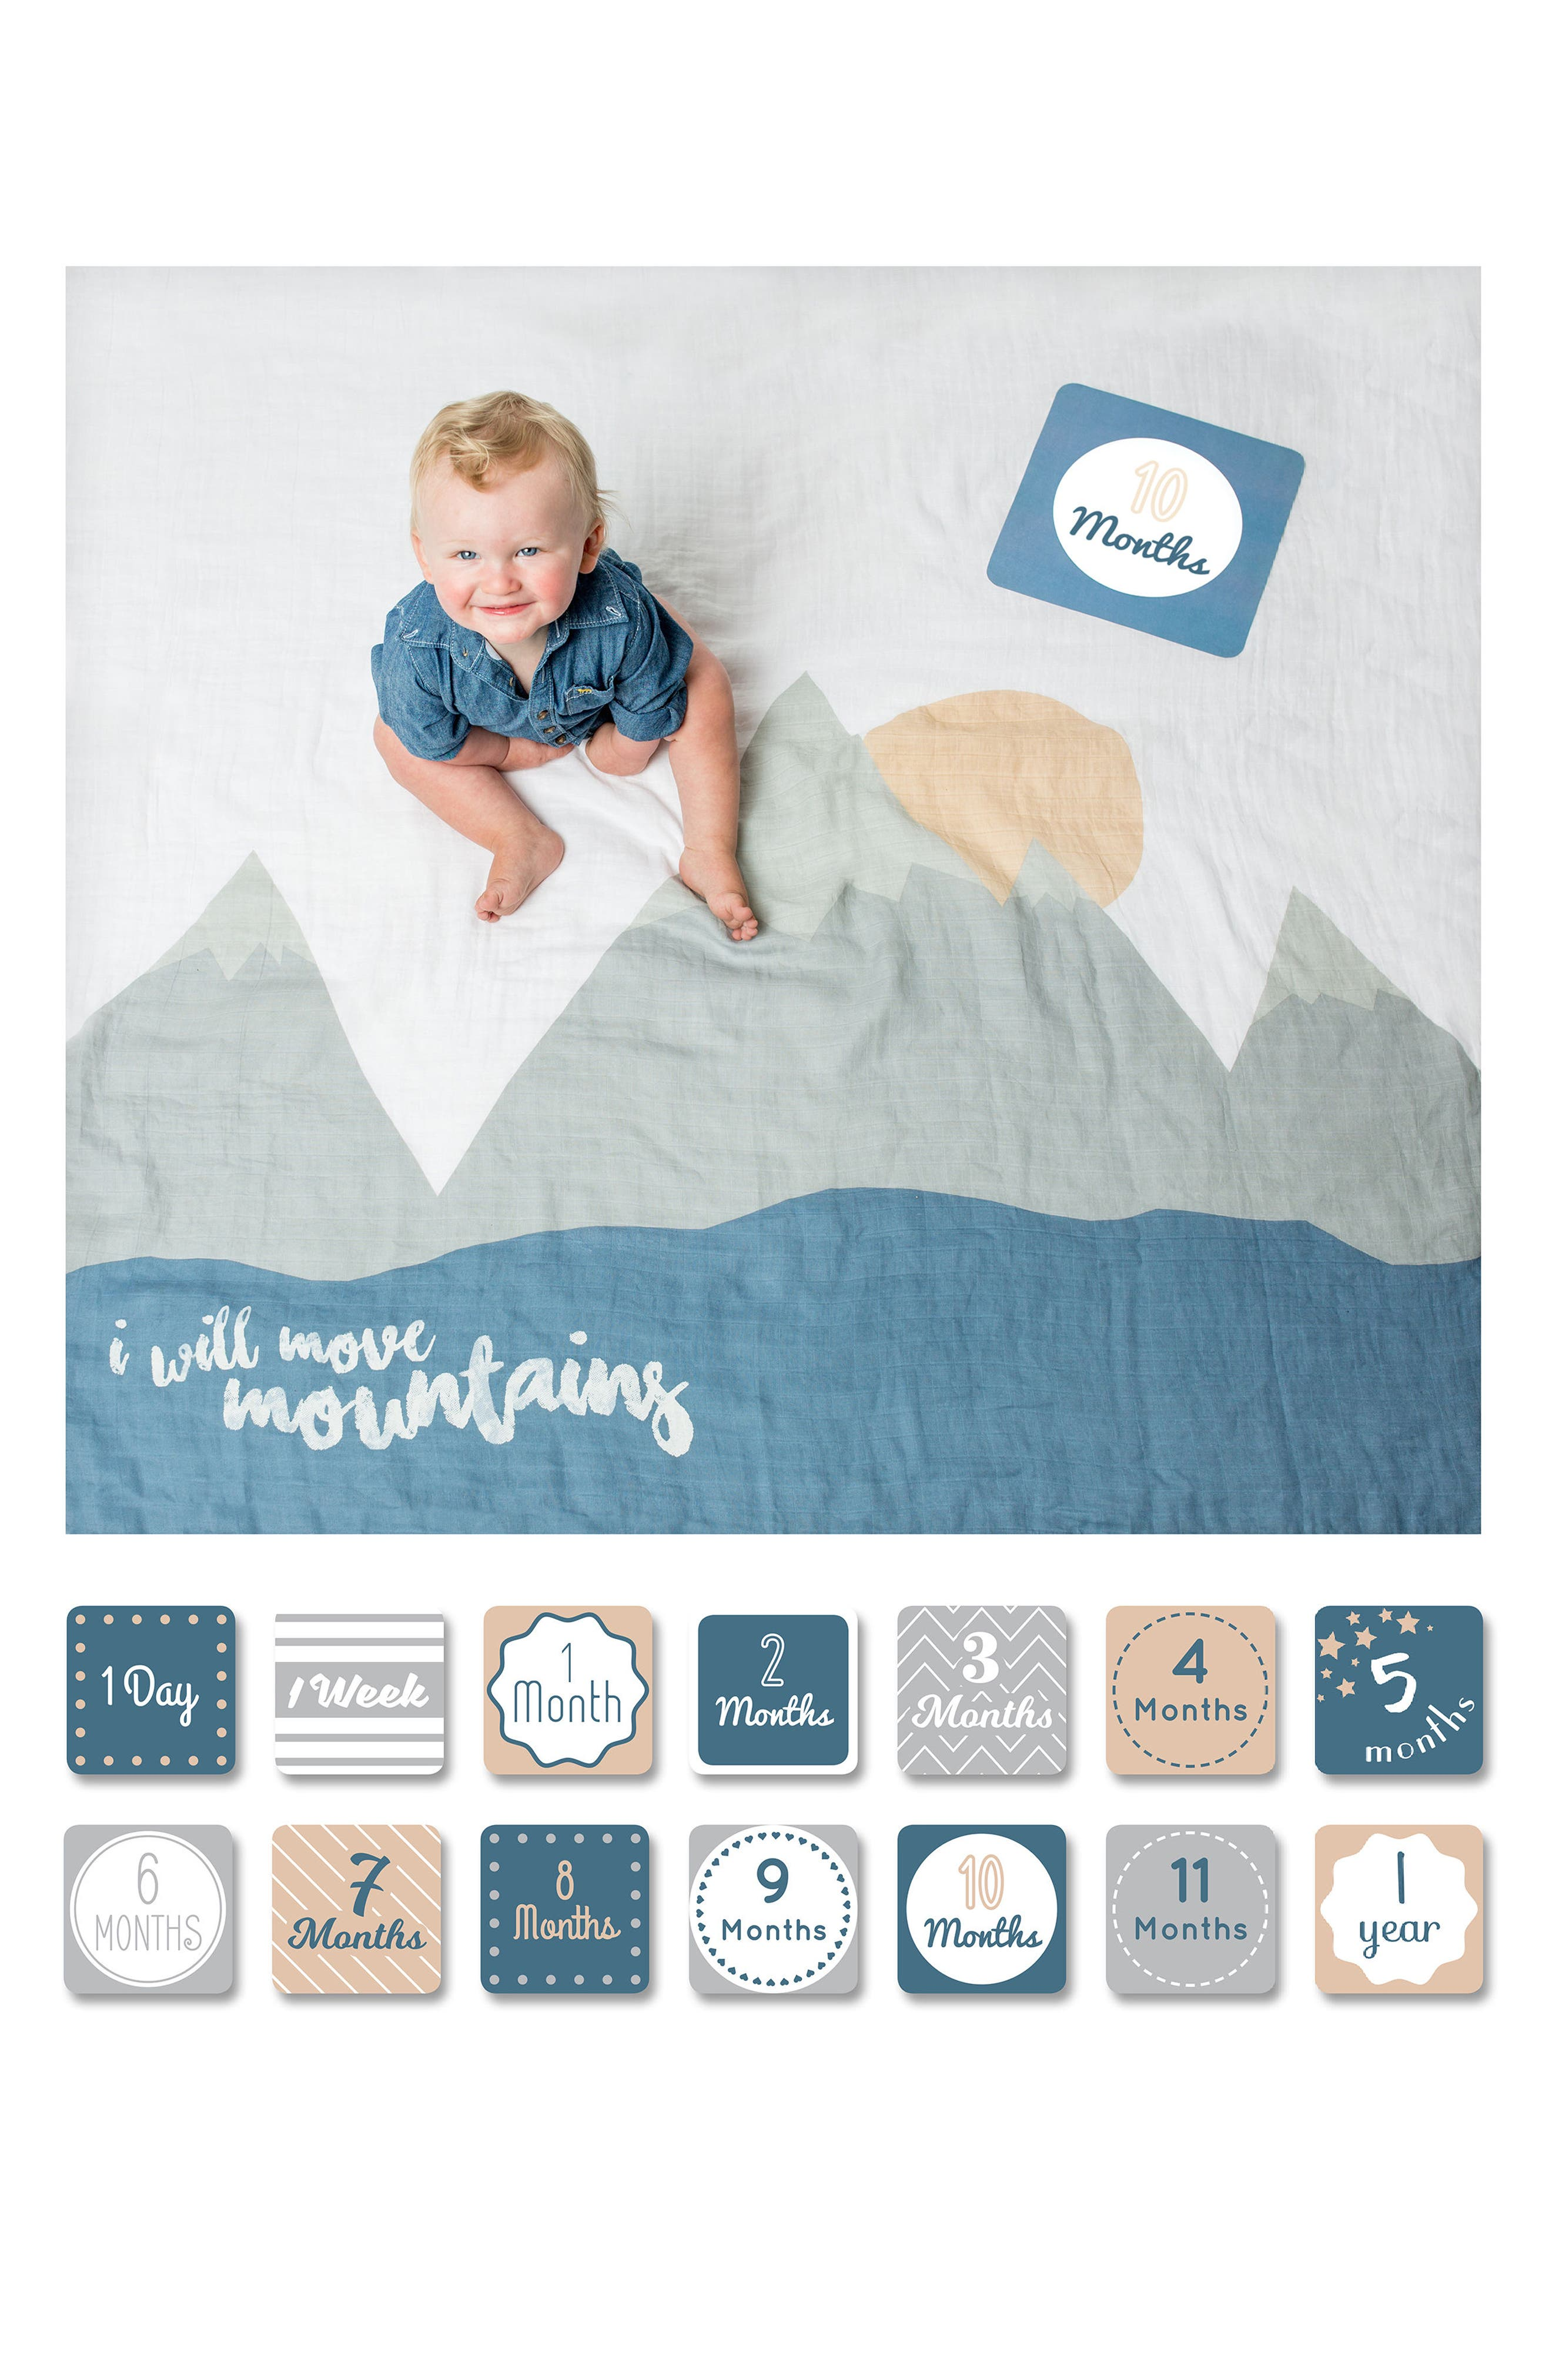 Baby's First Year - I Will Move Mountains Muslin Blanket & Milestone Card Set,                             Alternate thumbnail 3, color,                             WILL MOVE MOUNTAINS